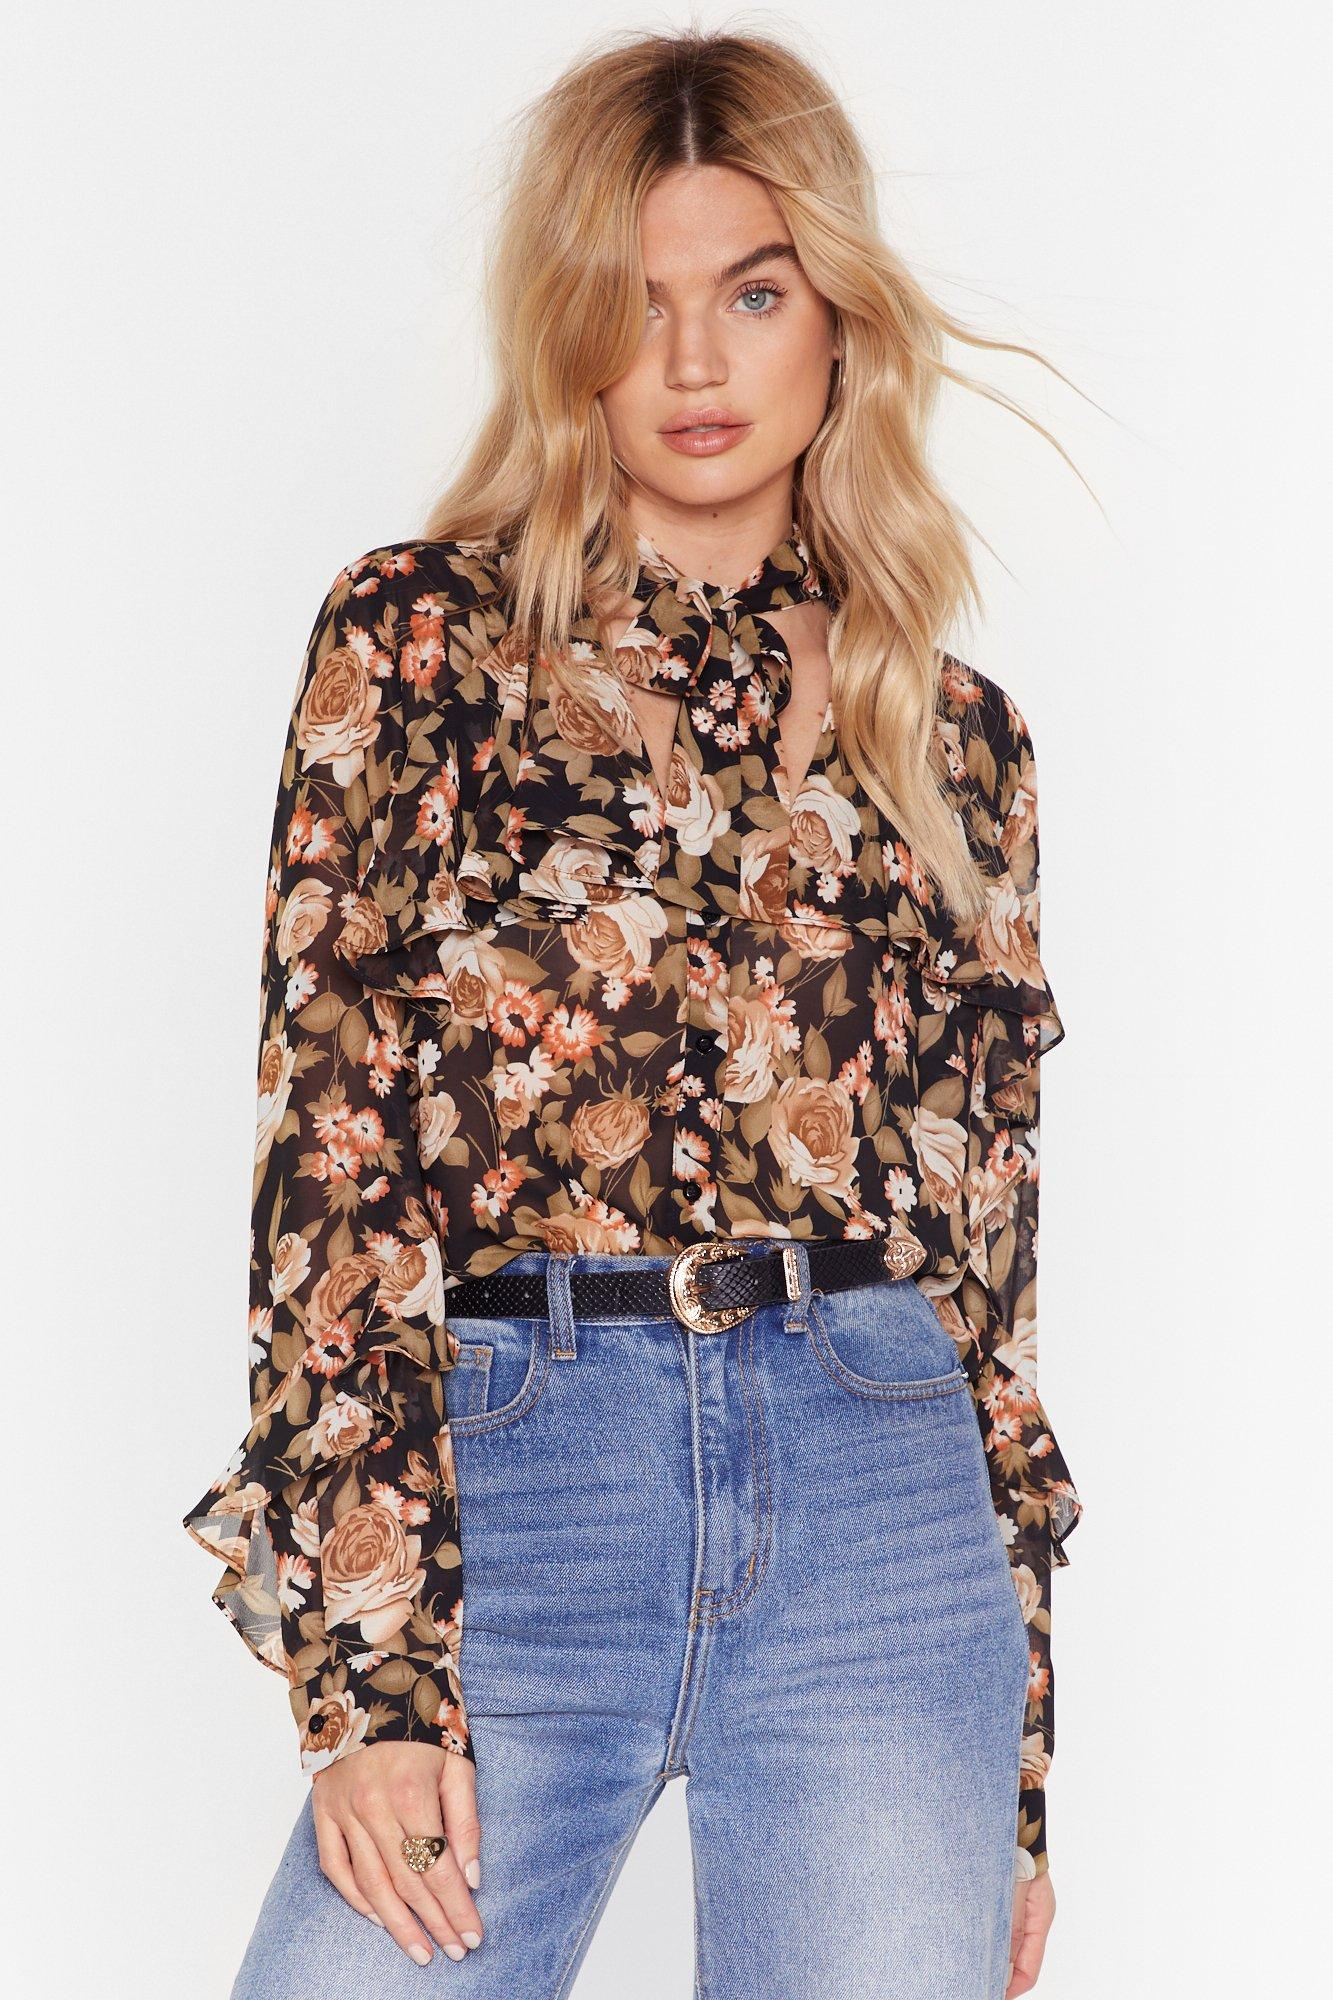 Image of Don't Grow How She Does It Floral Pussybow Blouse